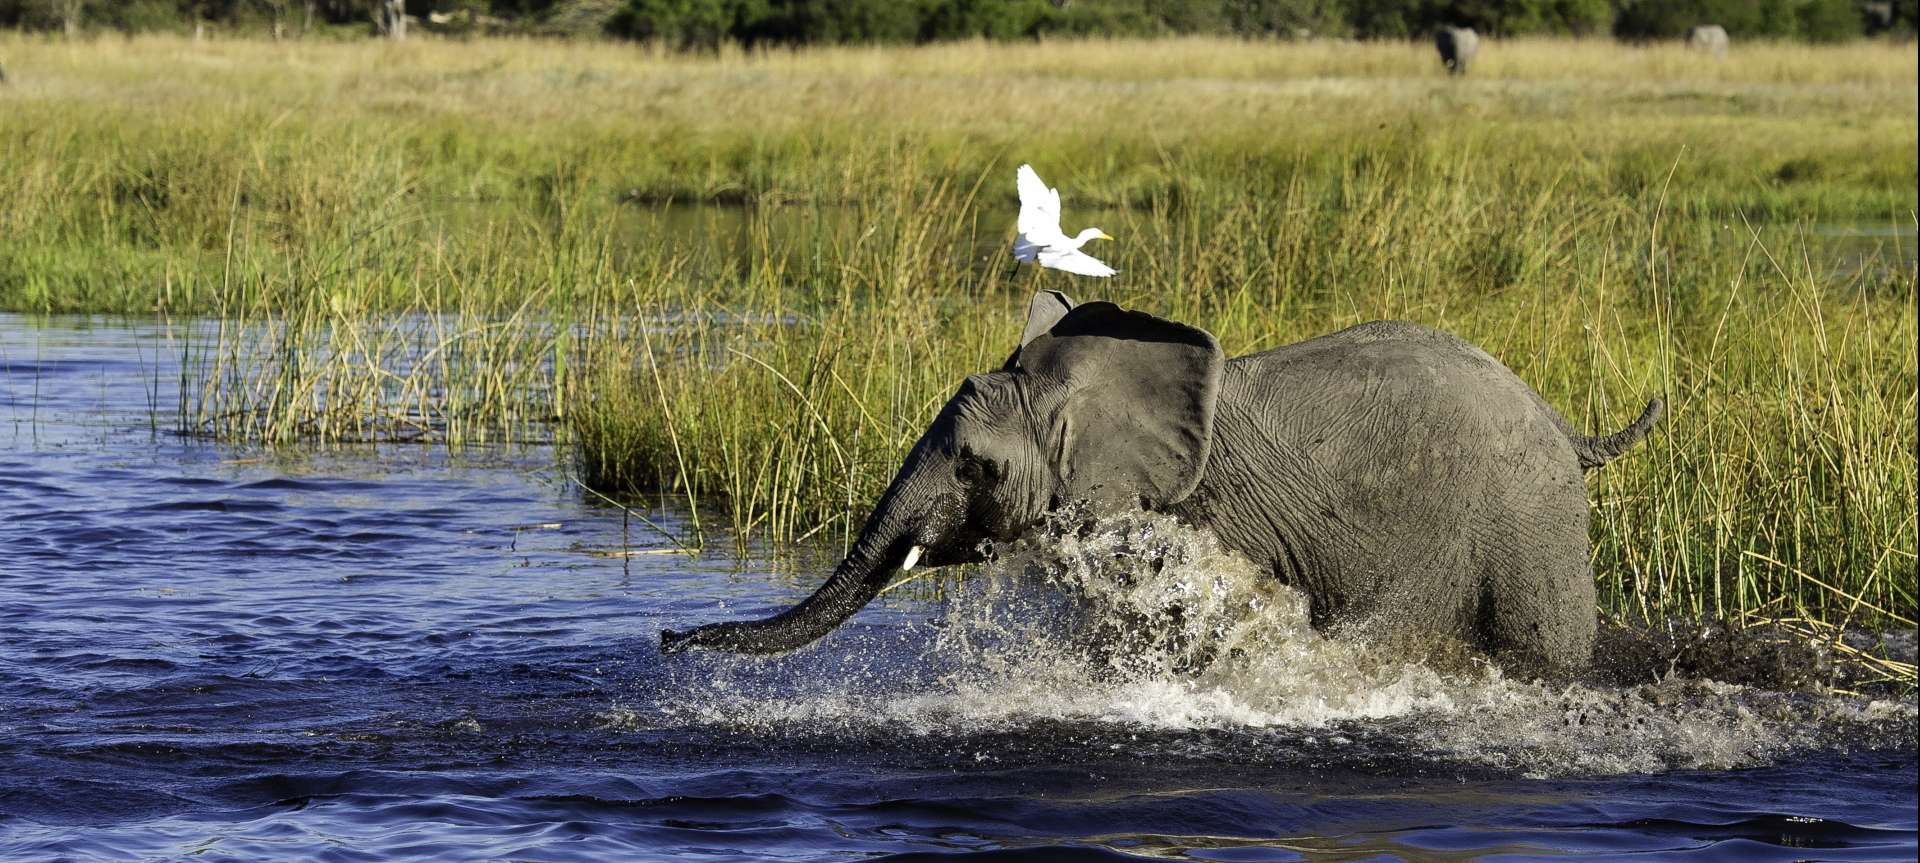 Wildlife is prolific throughout both South Africa and Botswana